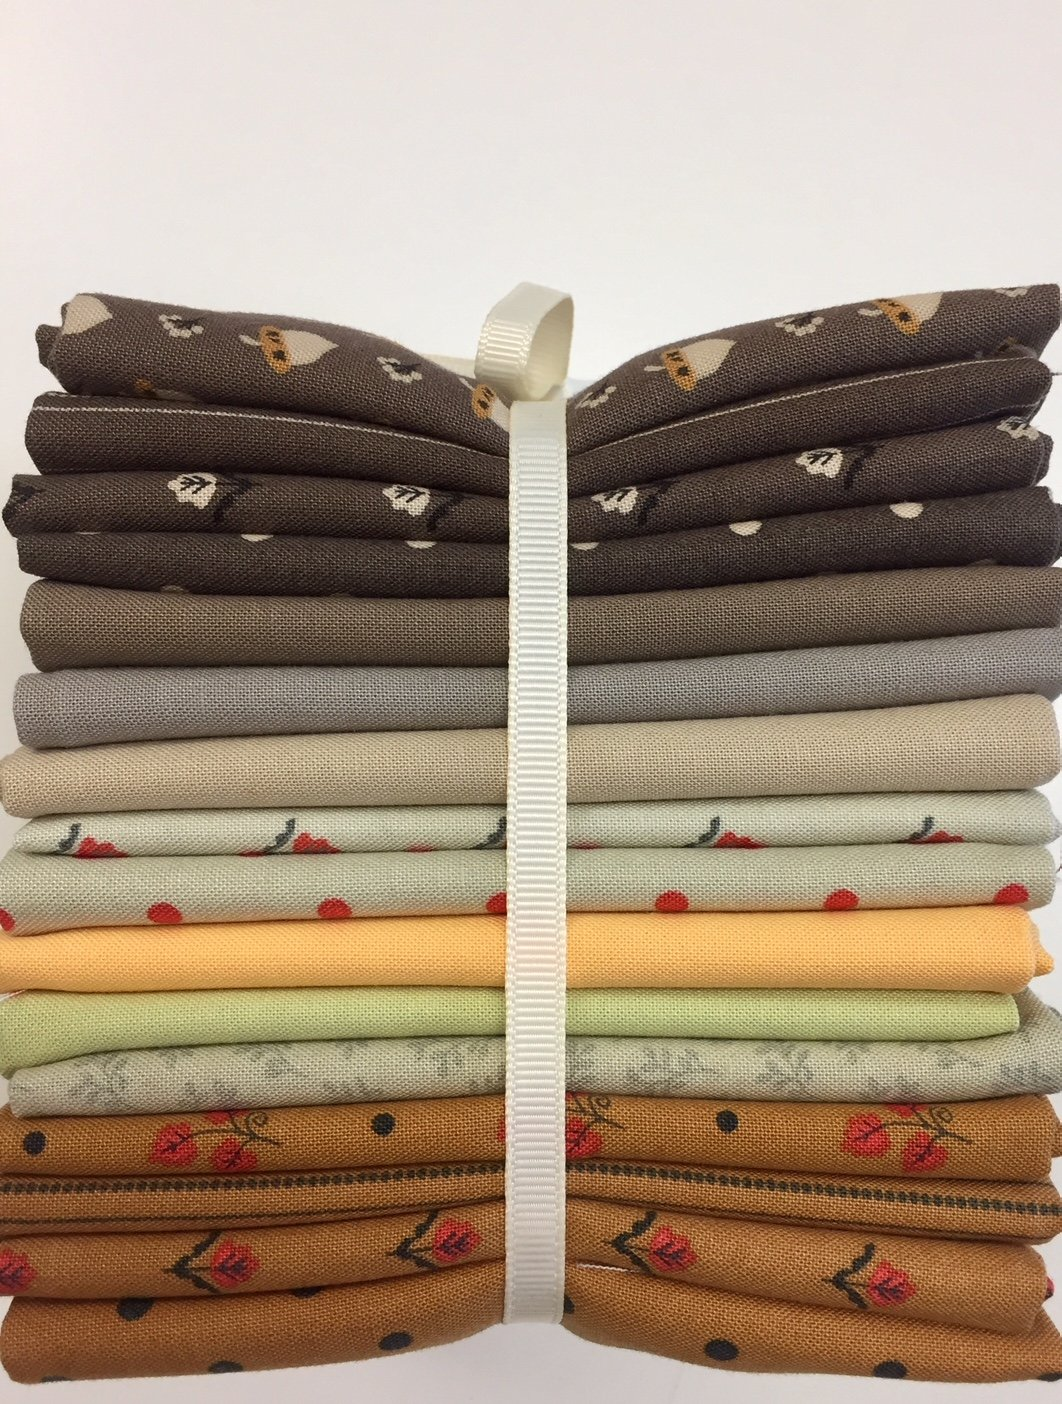 101 Maple Street Fat Quarter Bundle #1,  16 pieces